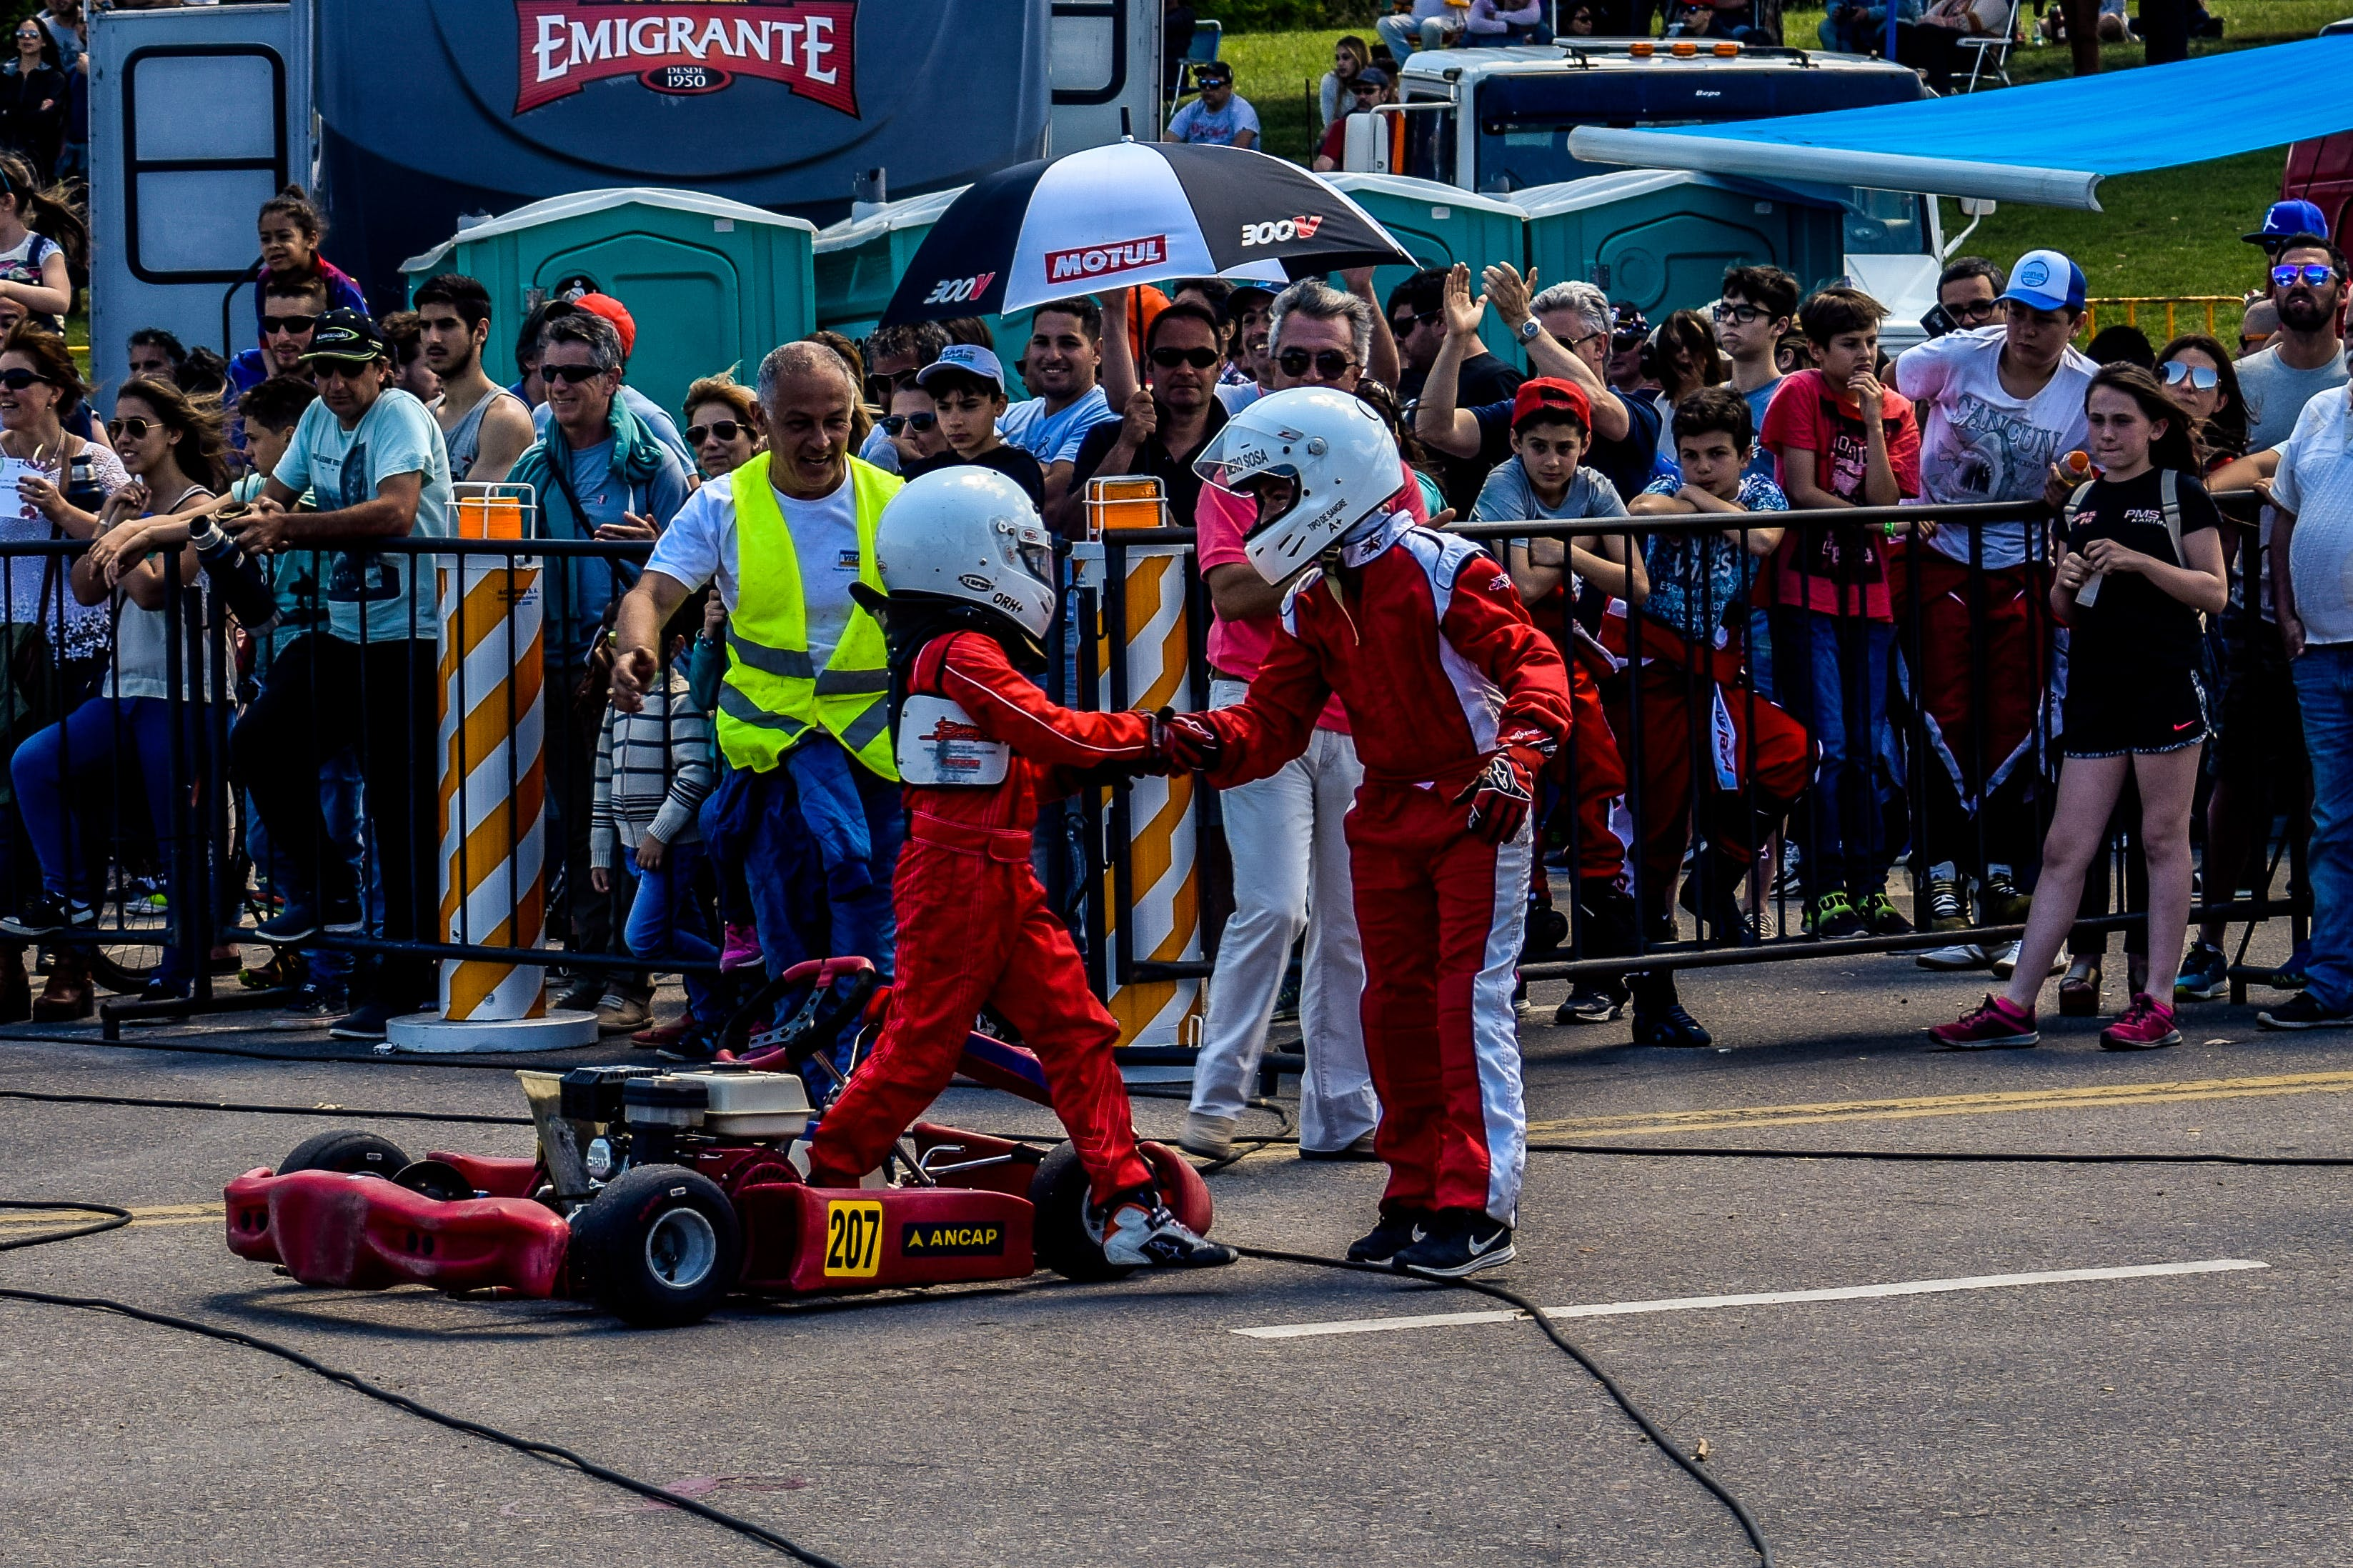 Two Boy in Red and White Racing Costume